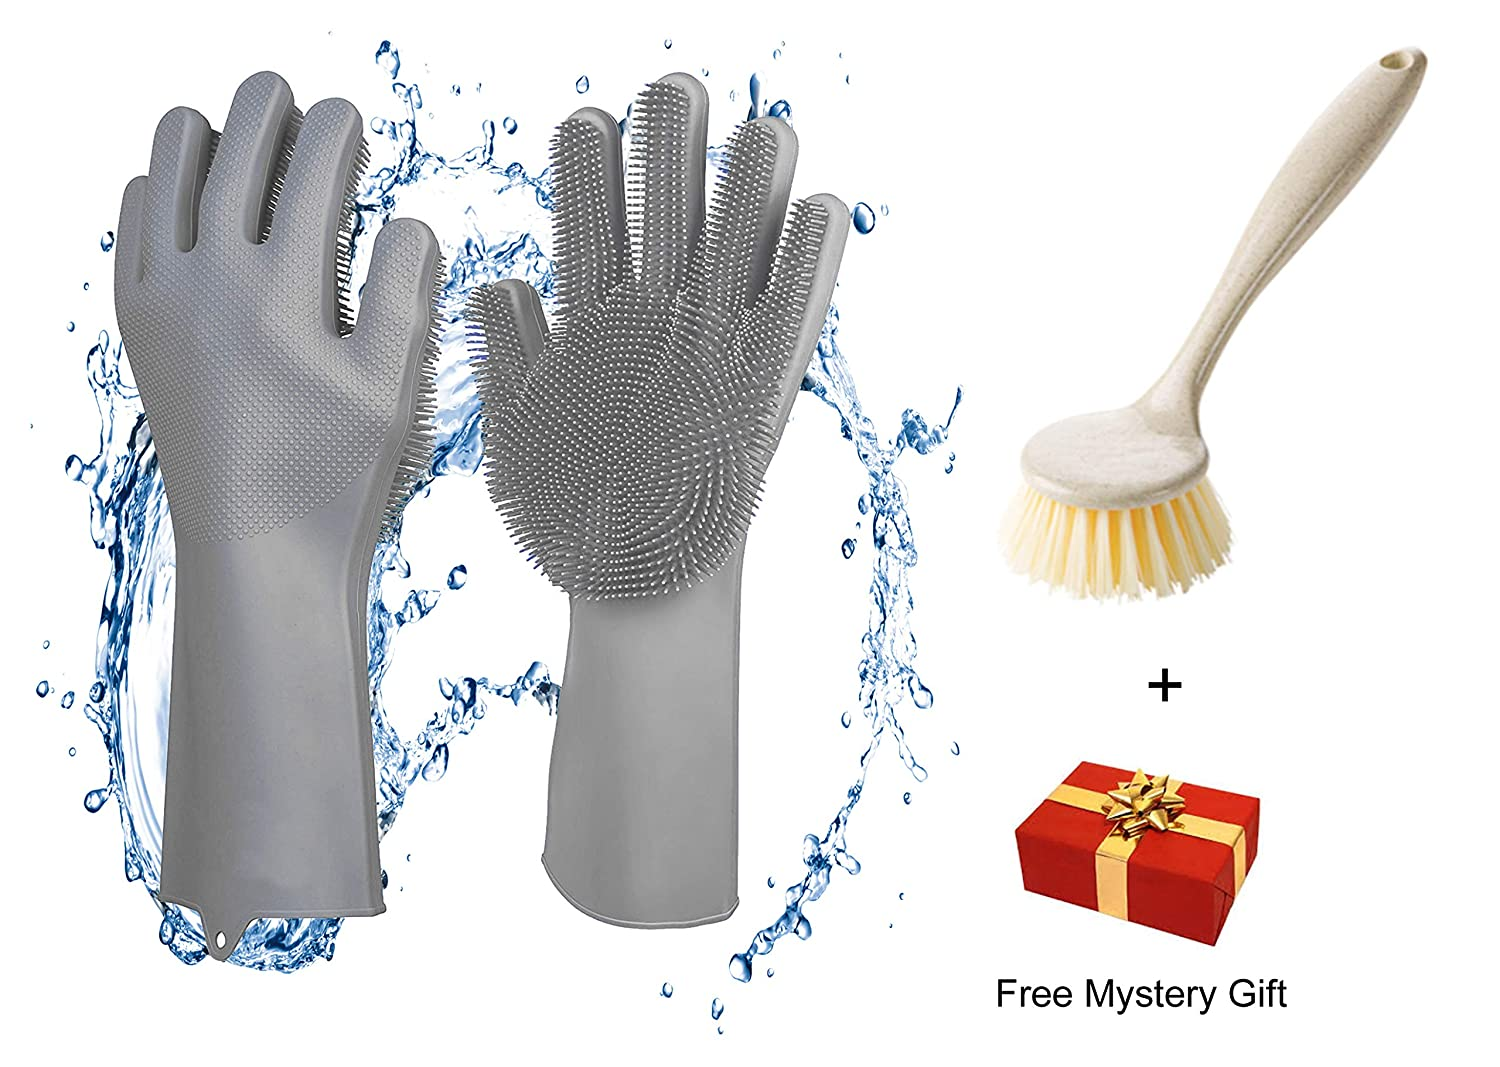 AmazinWads Magic Saksak Silicone Gloves with Wash Scrubber and Washing Dish Brush for Tough Baked-On Food and Bonus Mystery Gift, Reusable Dishwashing Gloves for Cleaning Dishes, Cars, and Baths